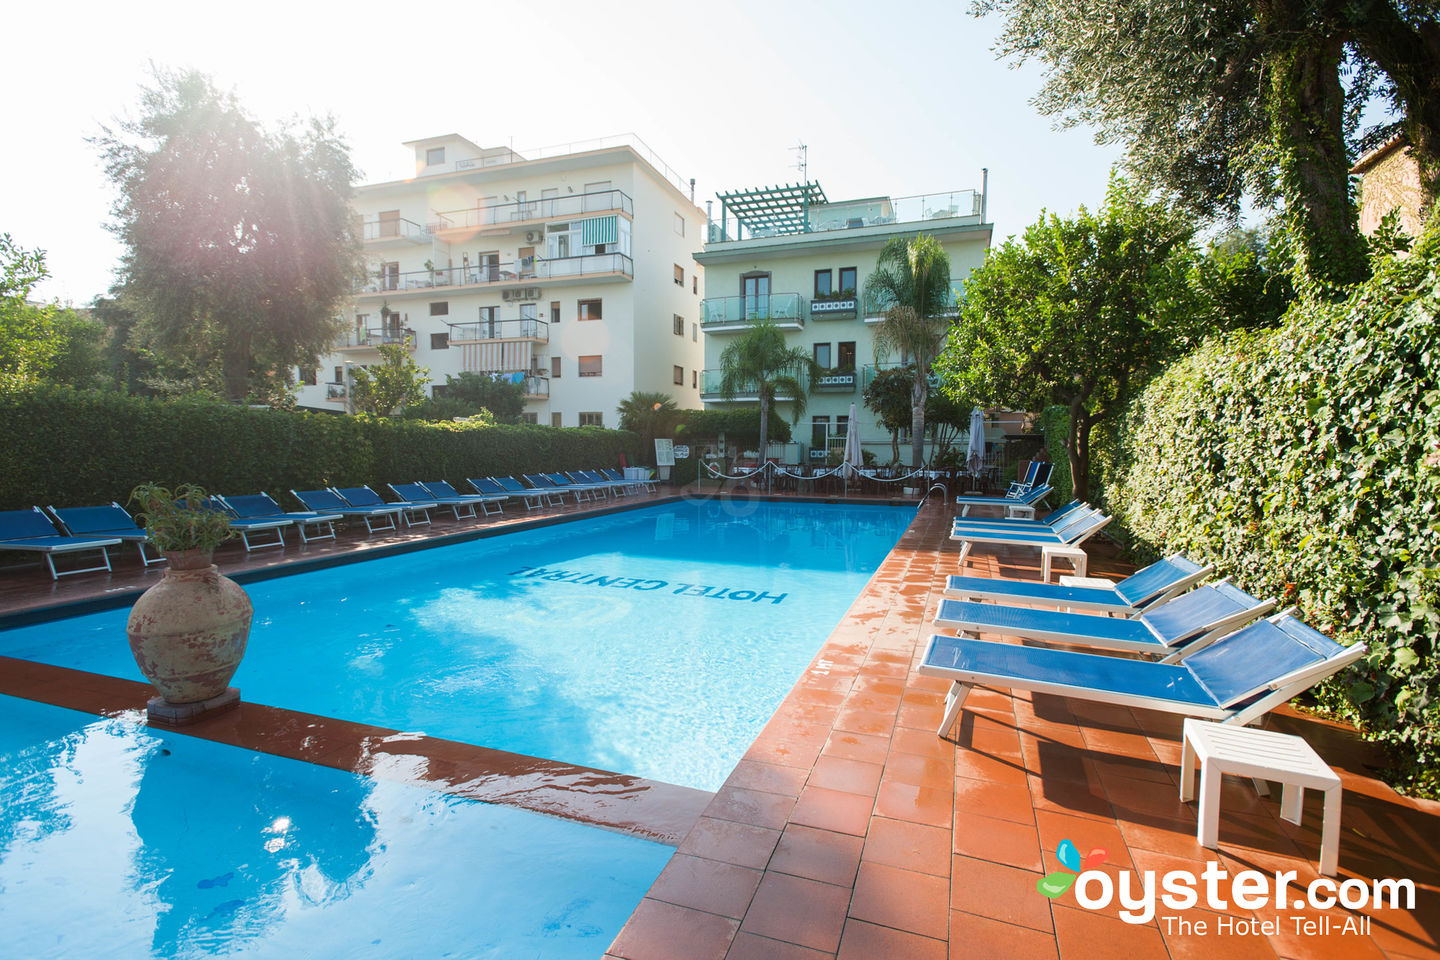 Comfort Hotel Gardenia Sorrento Coast Review What To Really Expect If You Stay